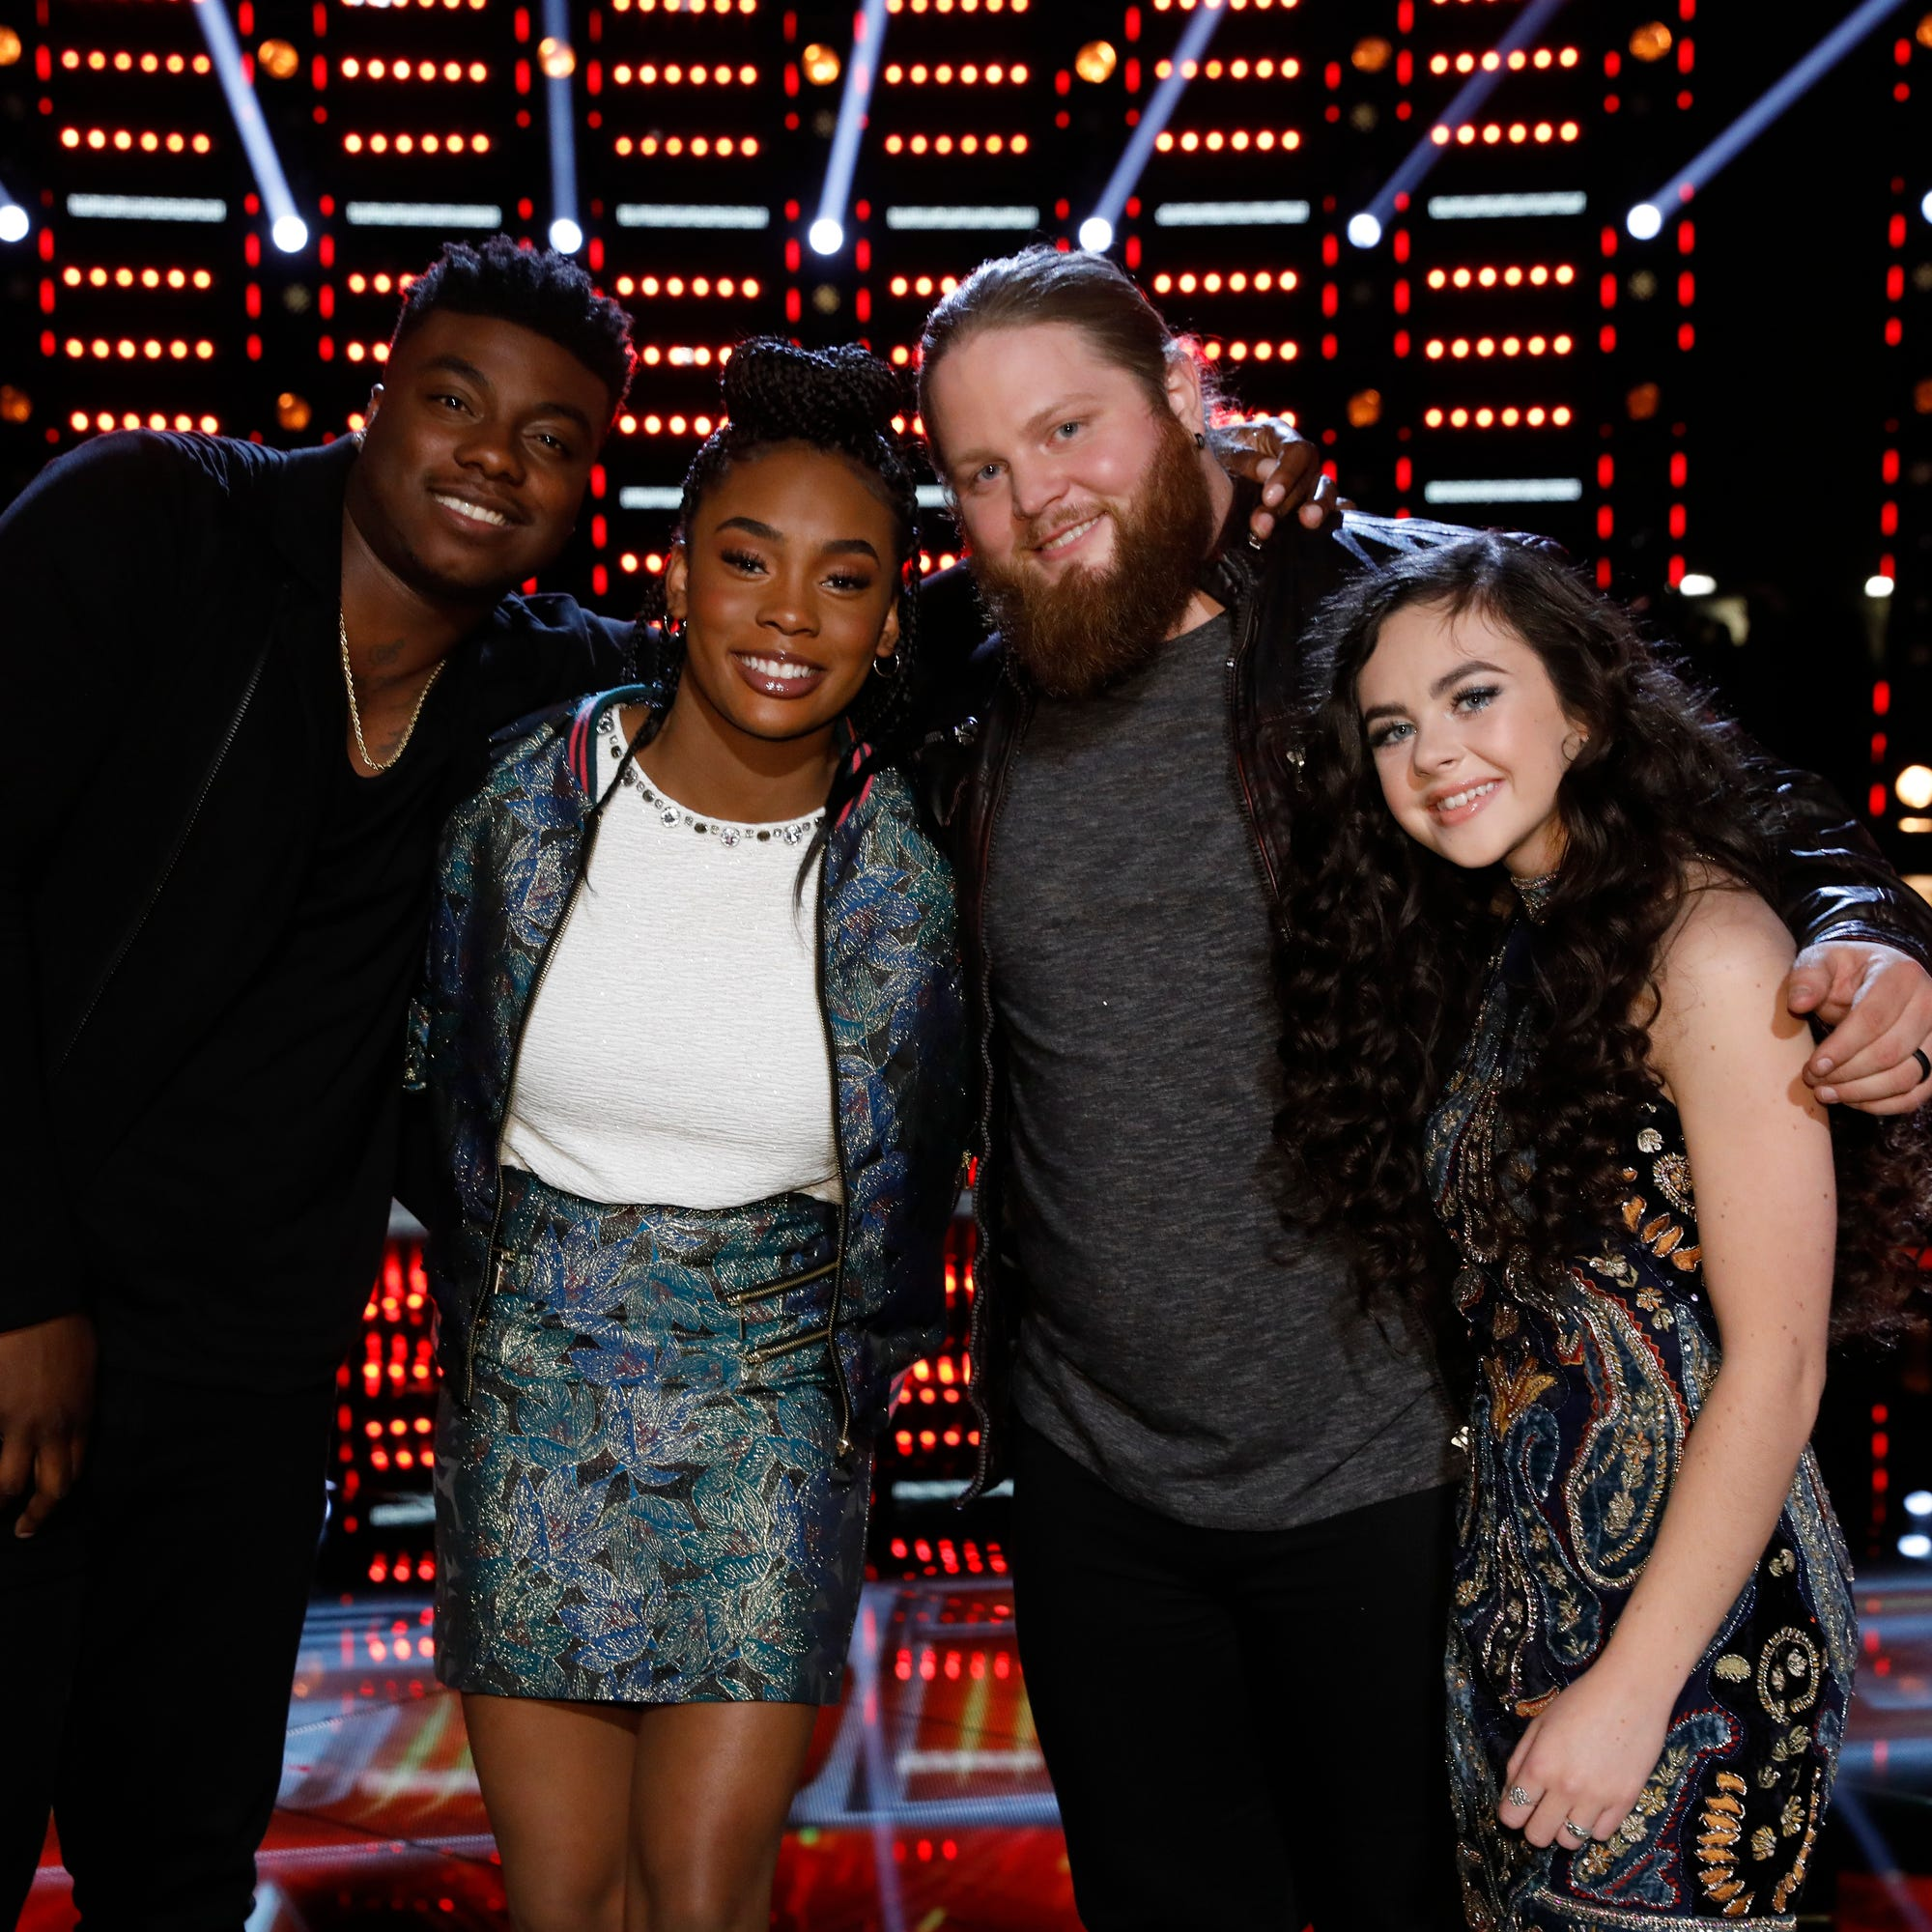 Can Wisconsin's Chris Kroeze win 'The Voice'? We sort out each of the 4 finalists' chances